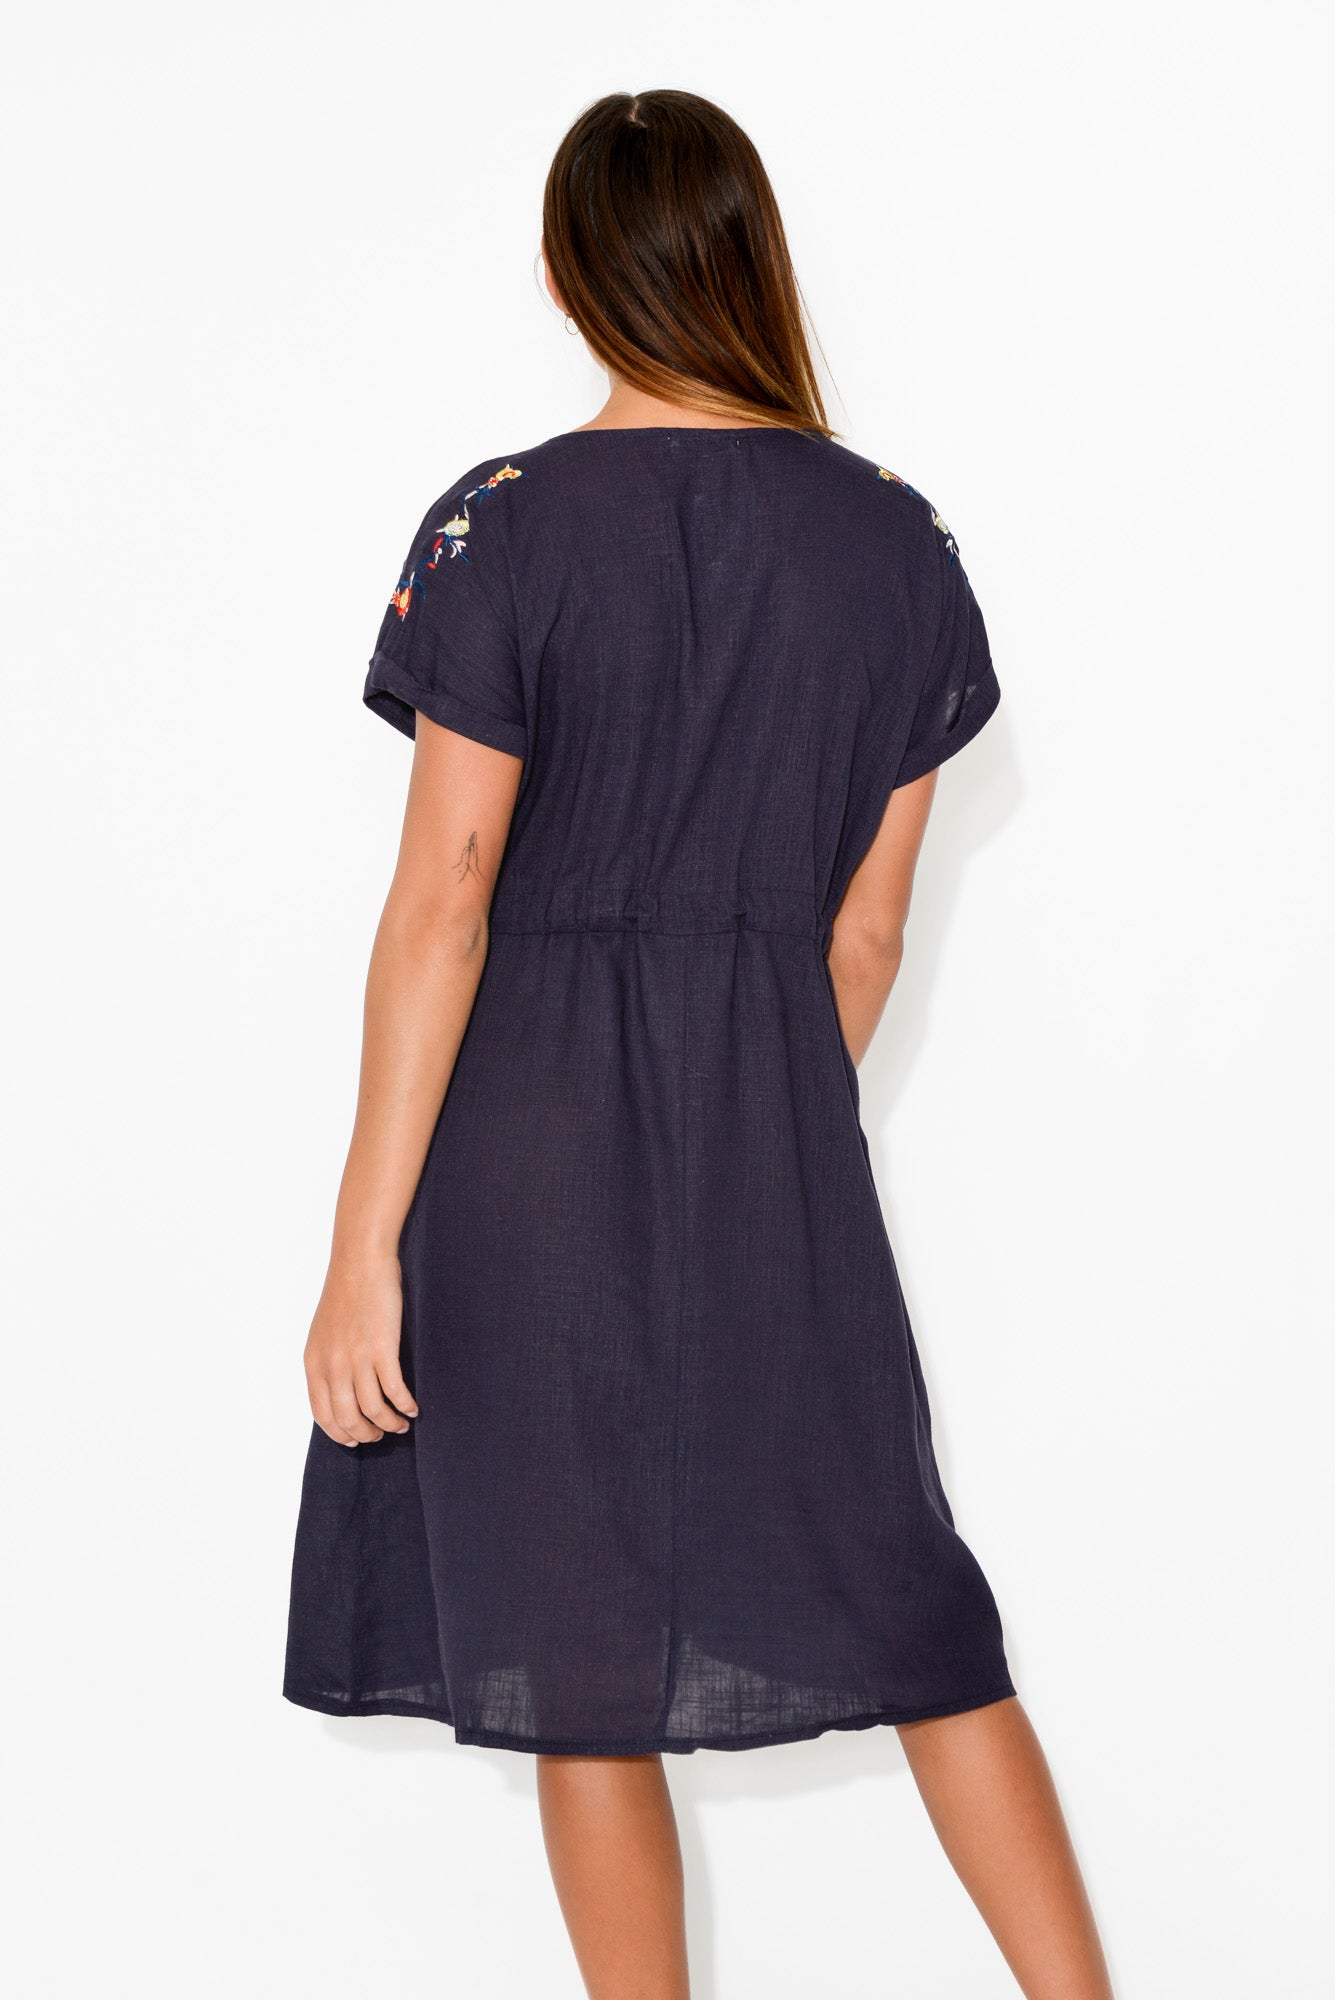 Navy Embroidered Tassel Tie Dress